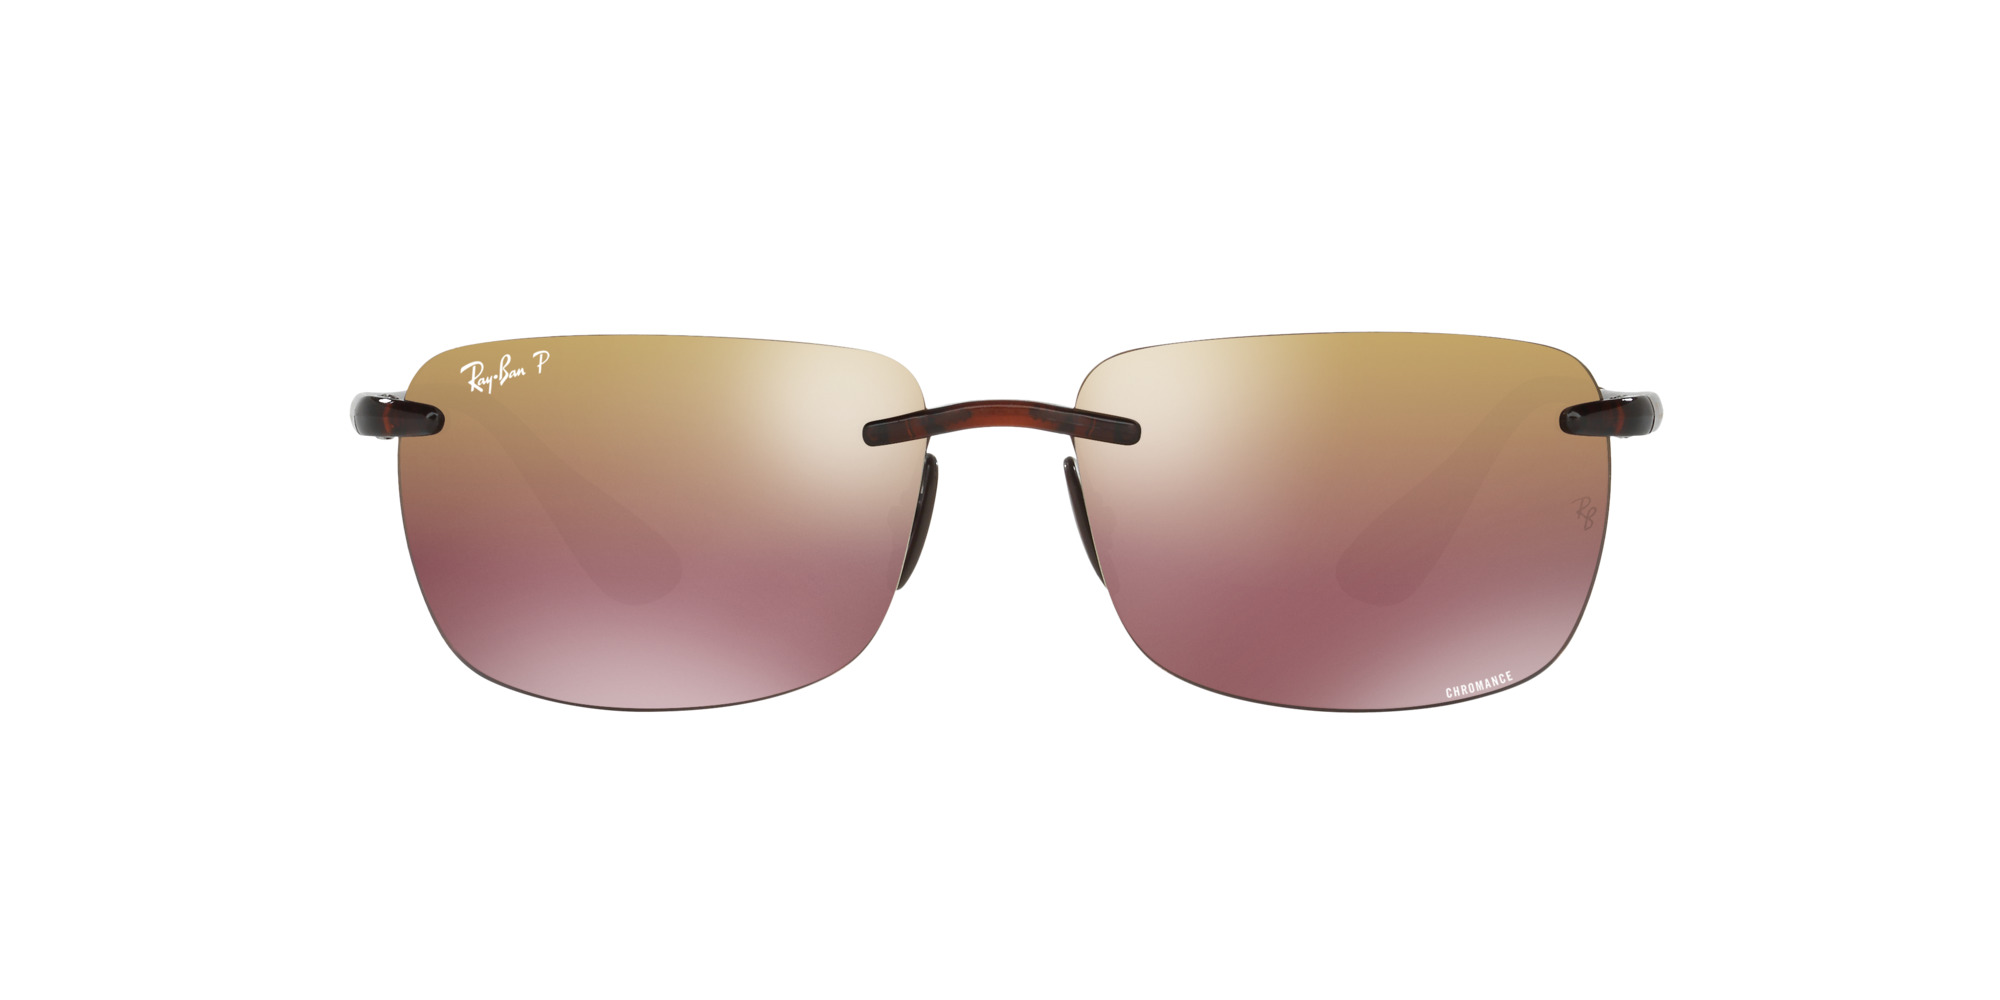 RAY-BAN RB 4255 604/6B POLARIZADO CHROMANCE-360